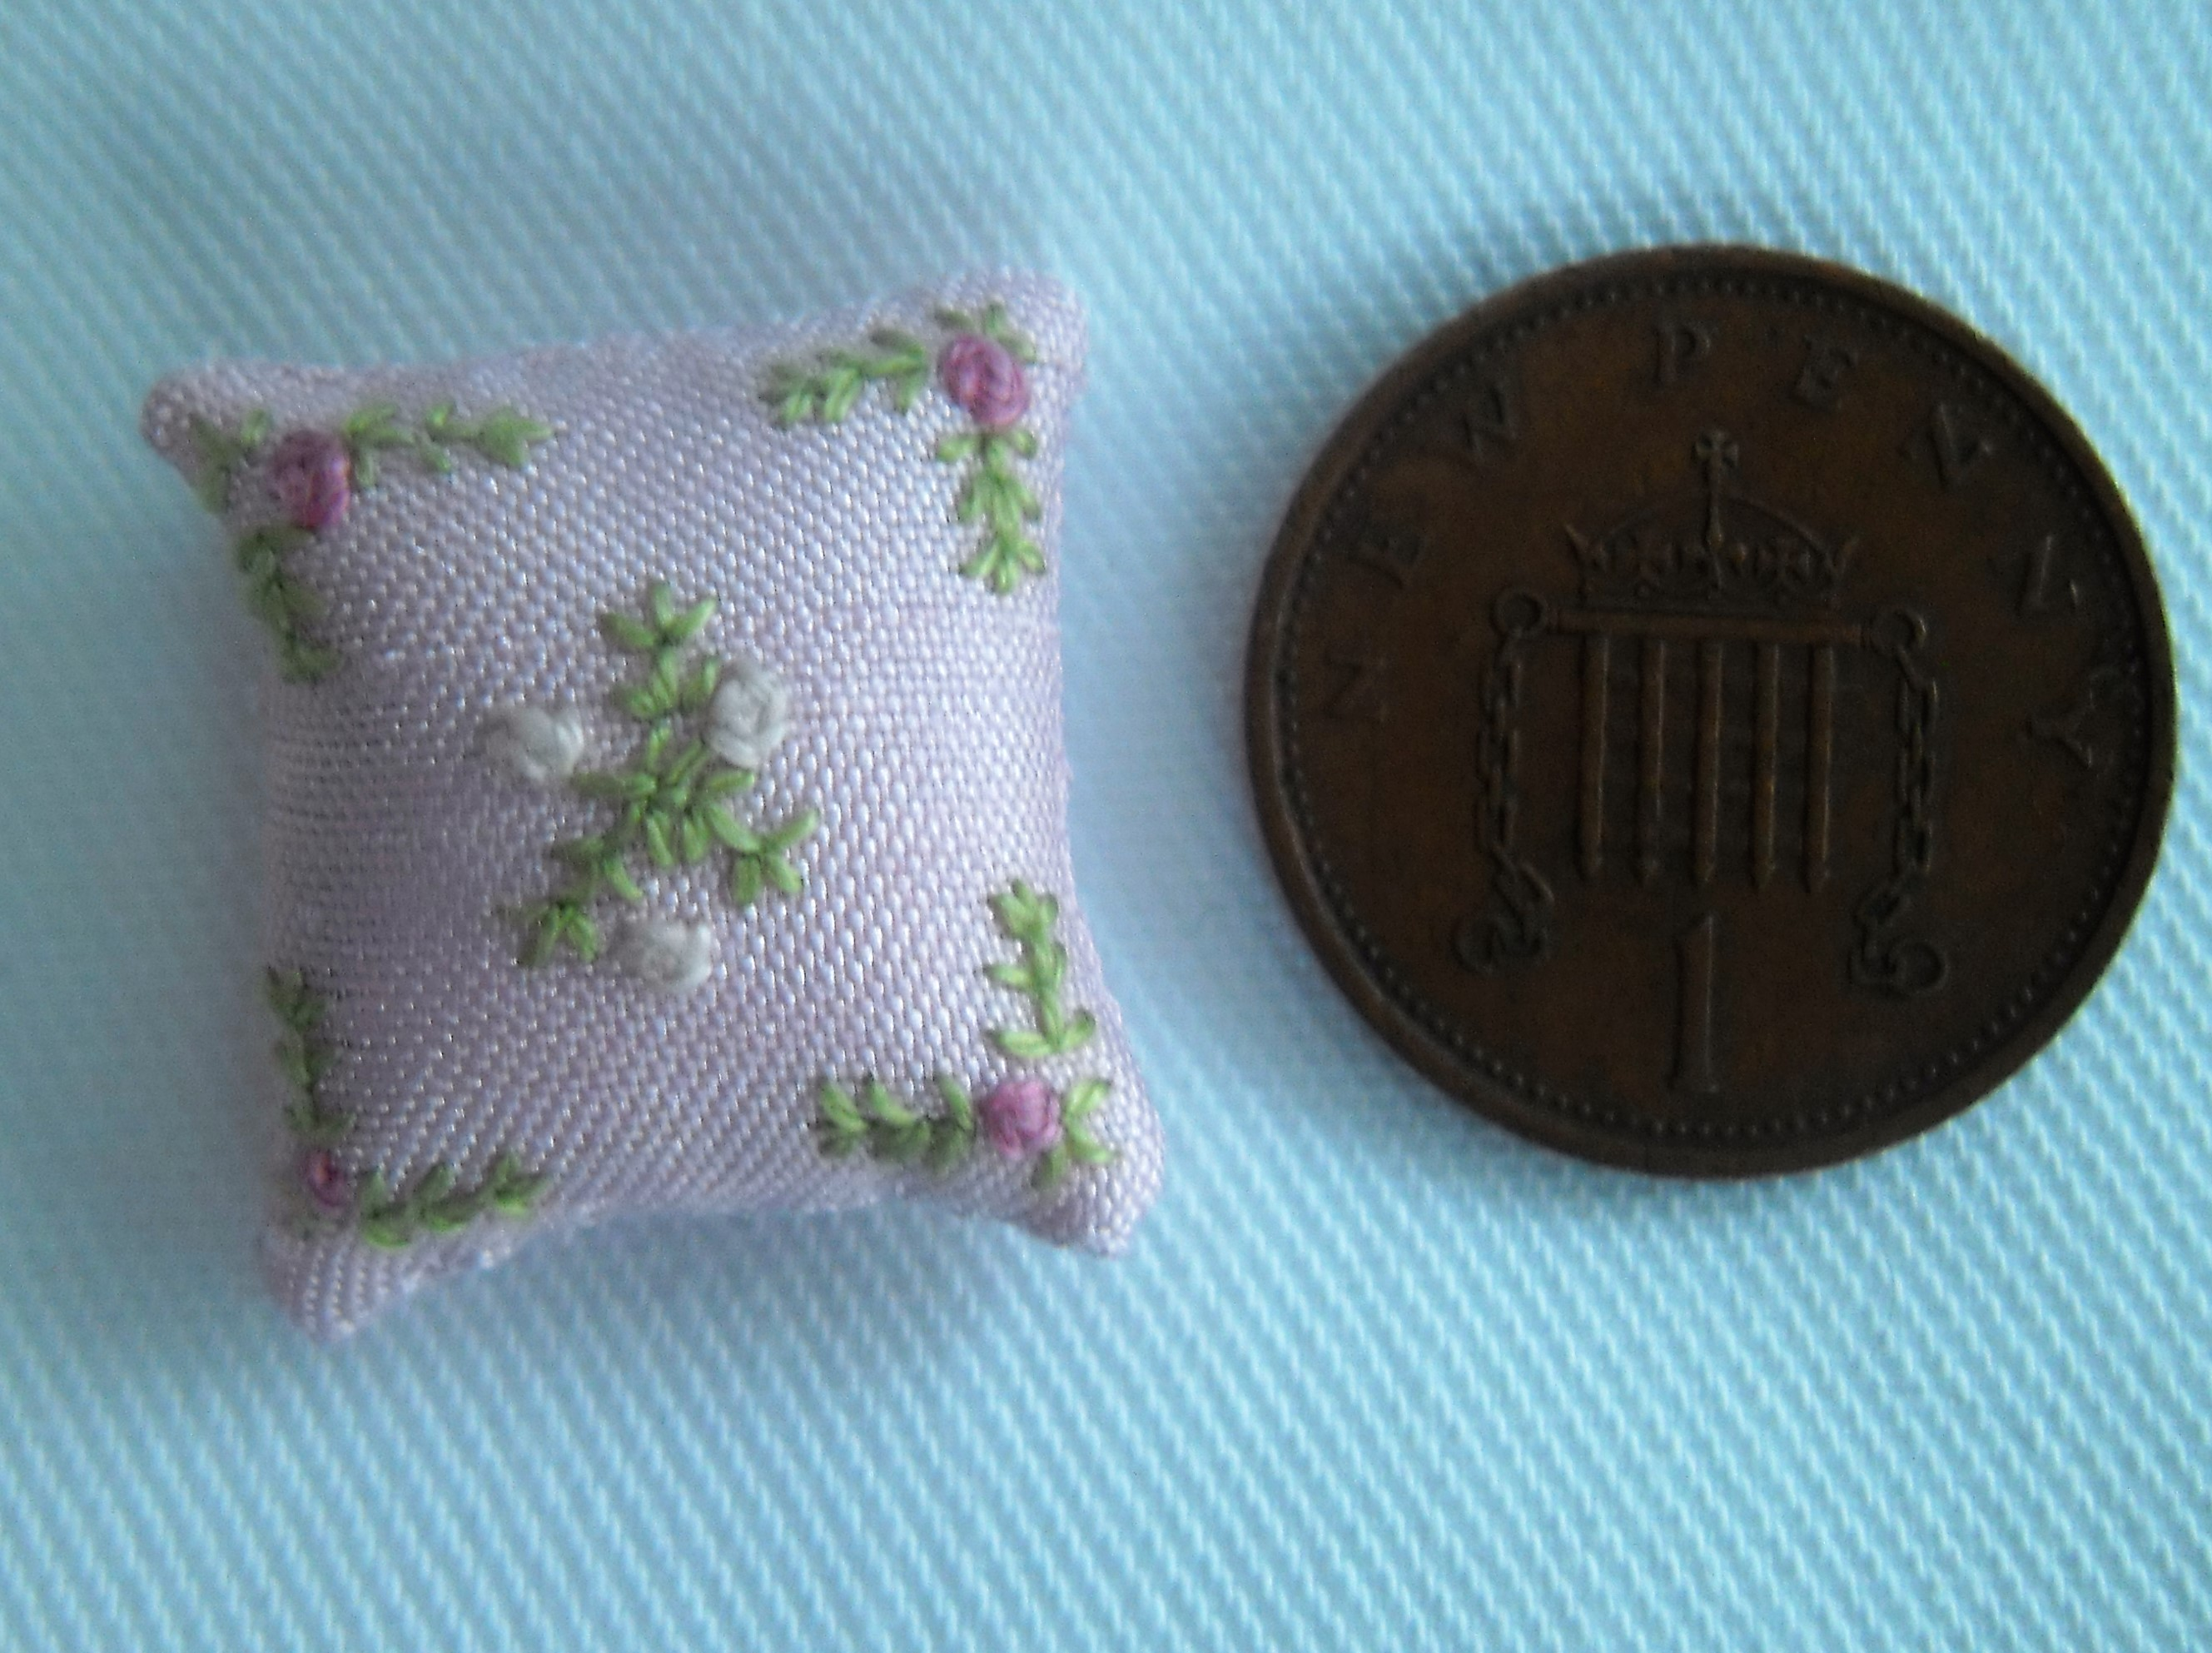 Hand Stitched Dolls House Pale Pink Cushions Flower Design 1/24th scale Pink & White Flowers